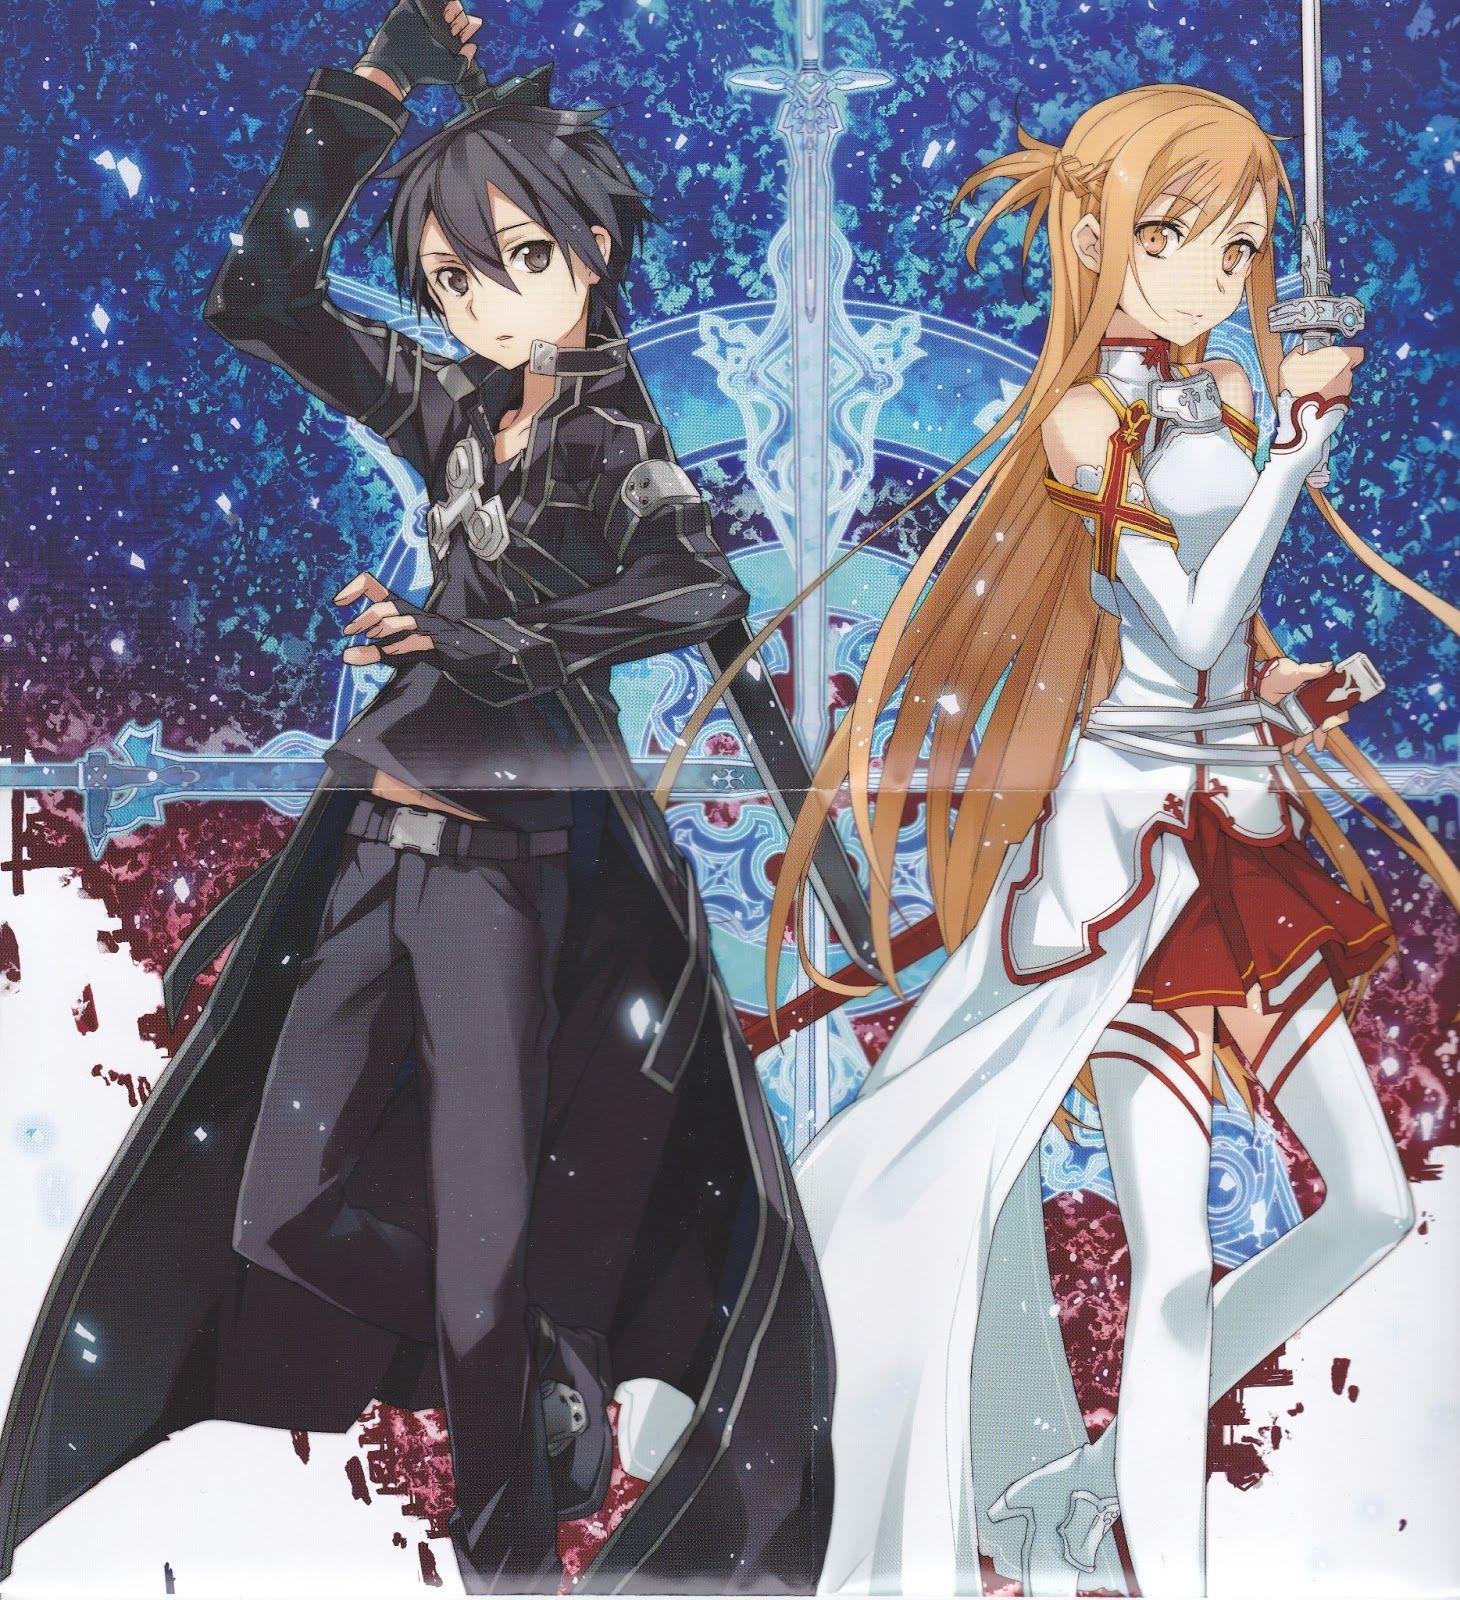 Kirito And Asuna Wallpapers - Wallpaper Cave